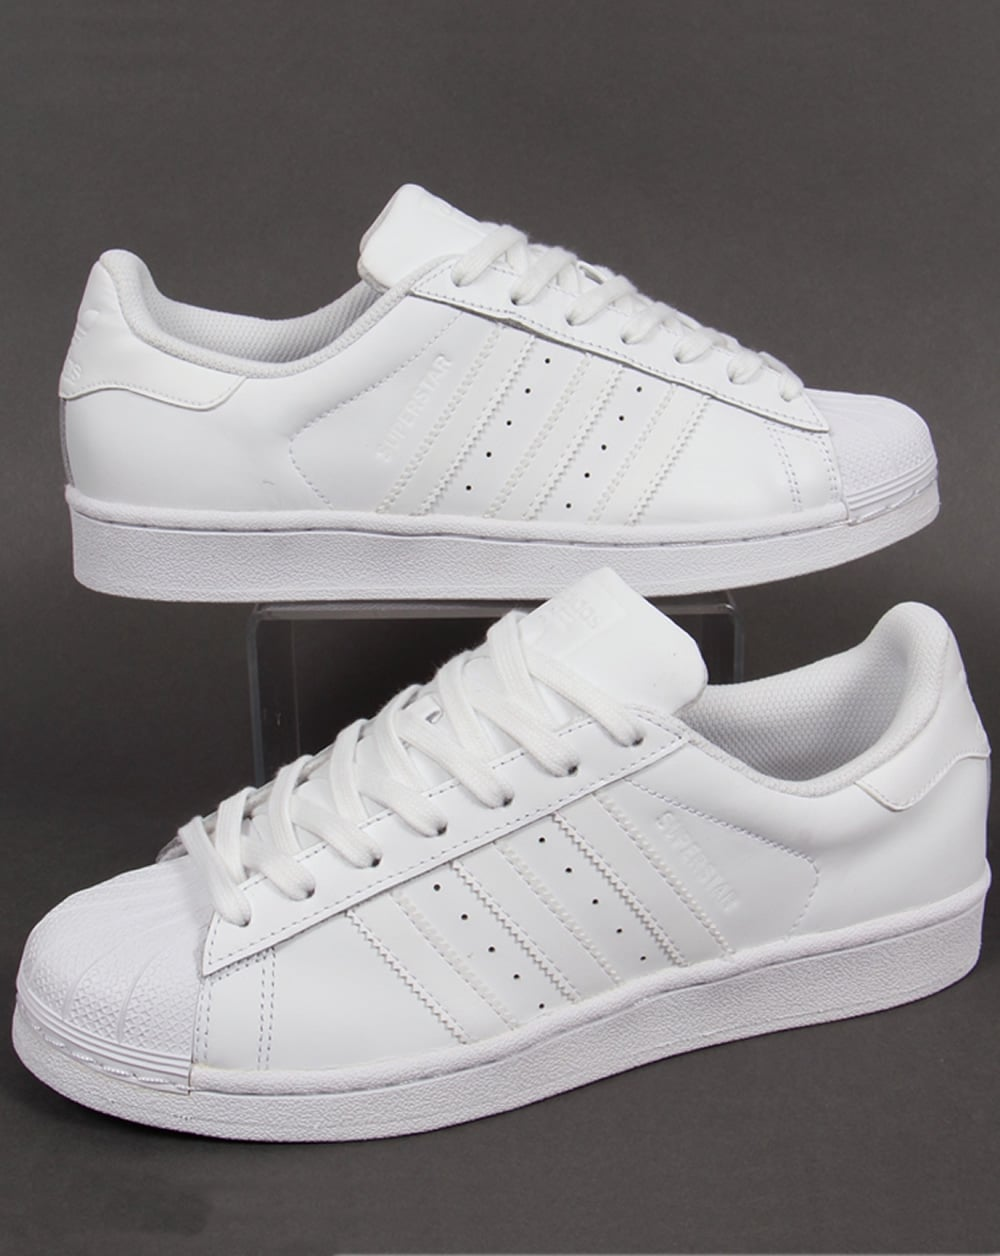 Adidas Superstar Trainers Triple White,shoes,